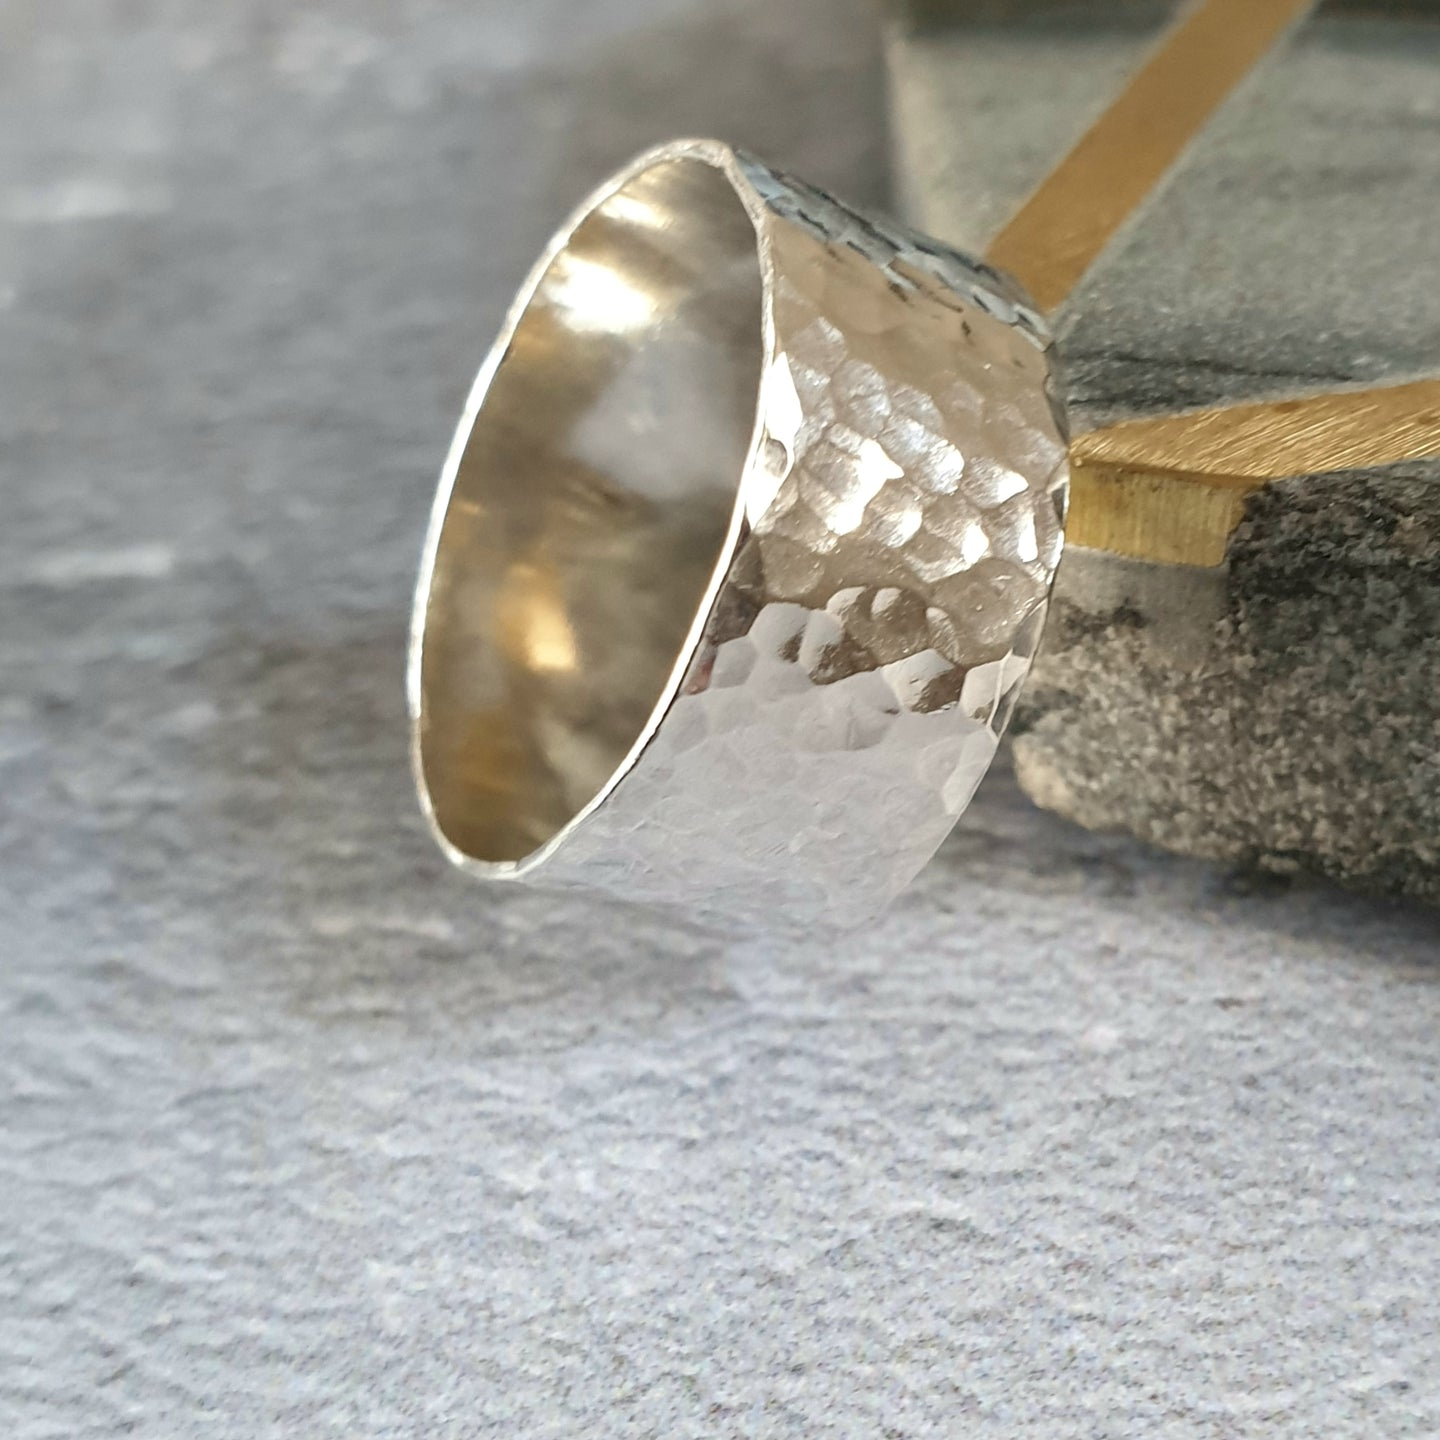 Super Wide Hammered Silver Ring